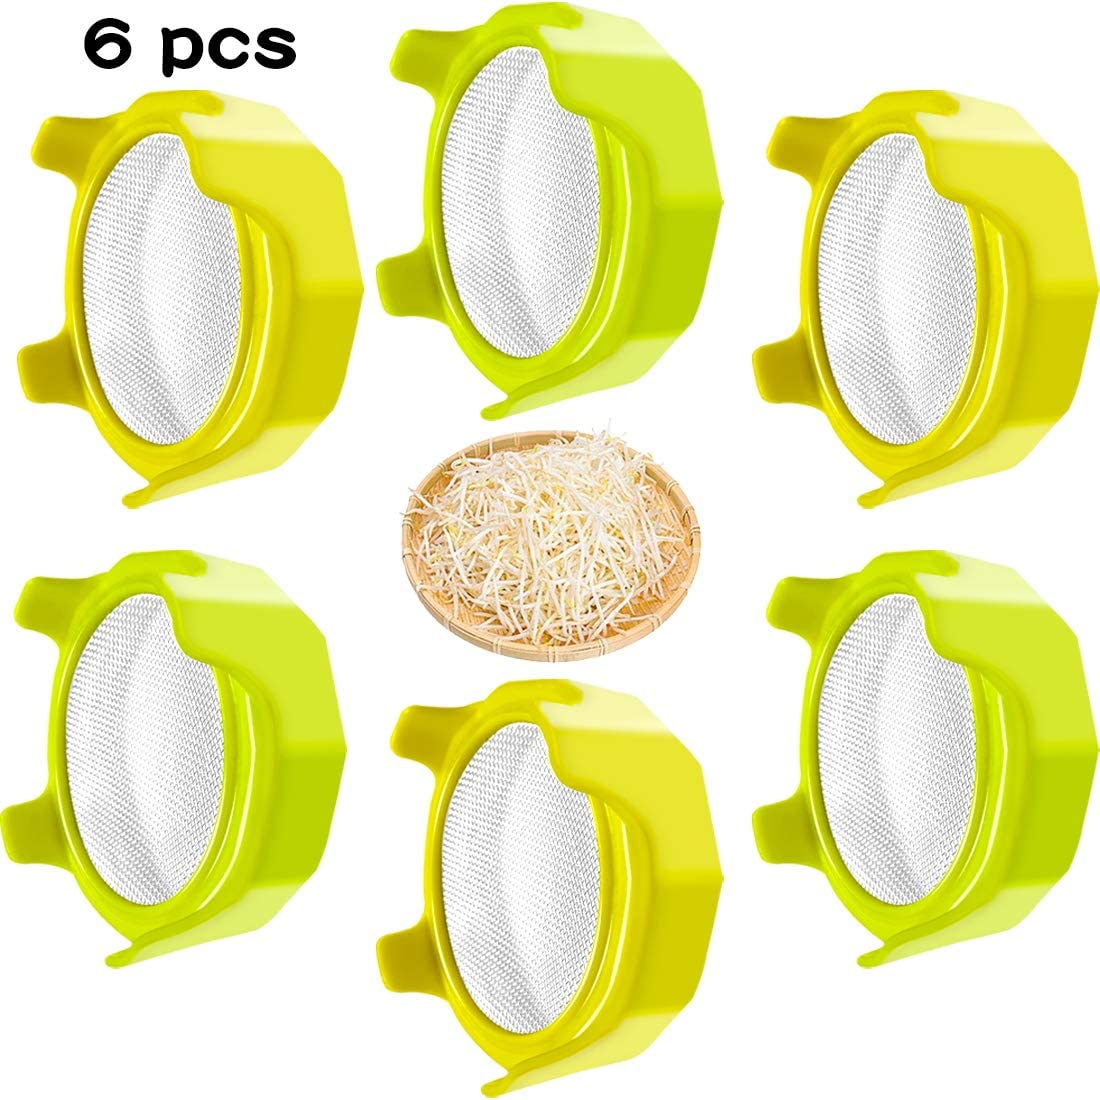 6 PCS Sprouting Lids with Stainless Steel Screen Plastic Sprouting Lids, for Wide Mouth Jars, Canning Jars, Suit for Grow Bean Sprouts, Salad Sprouts - Easy Rinse & Drain (4 Inch, Yellow, Green)